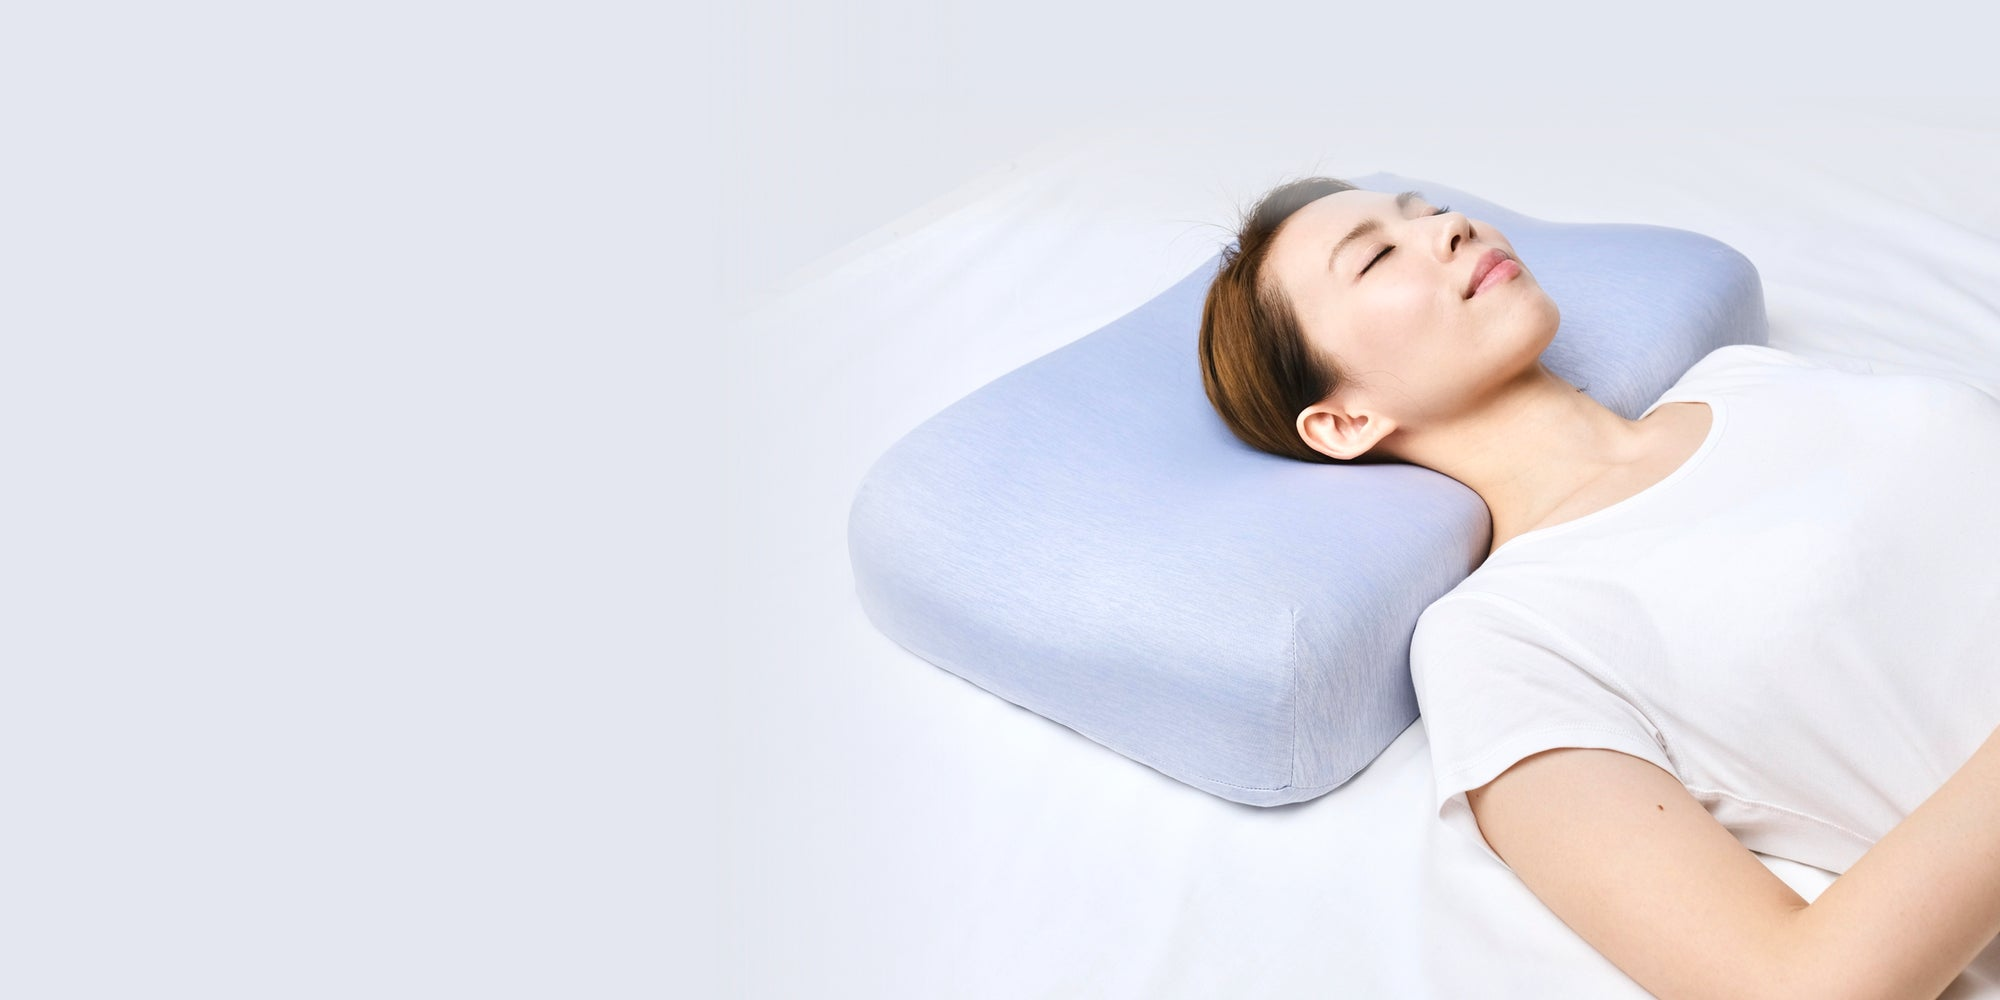 Cushion Lab Cooling Ergonomic Contour Pillow, Orthopedic Neck Support Memory Foam Pillow for Sleeping, Cervical Pillow for Back Sleepers Side Sleepers